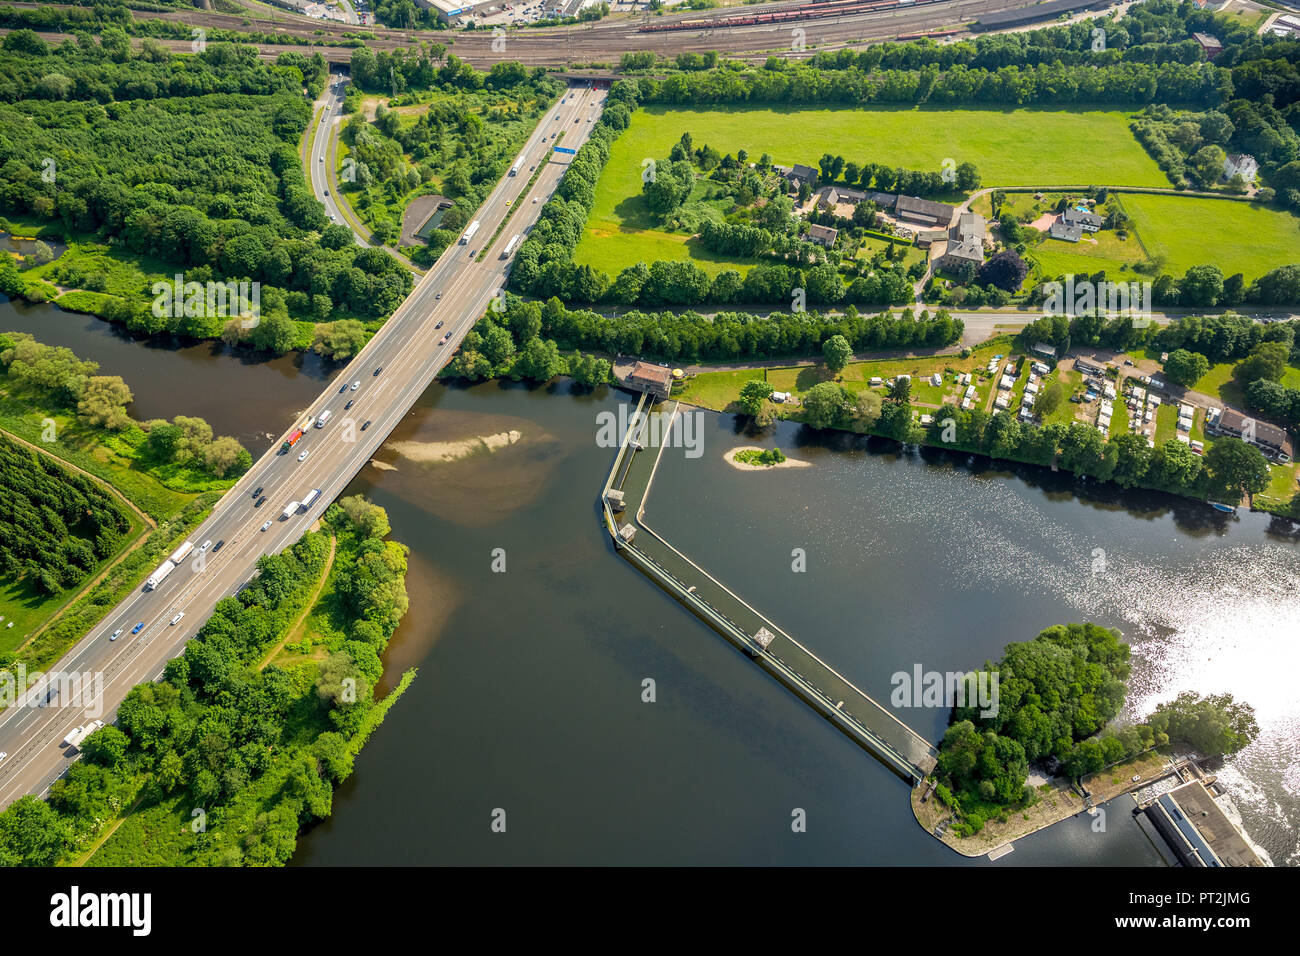 Ruhrtal, Hengsteysee, Volme - mouth, in this area new Volme bridge is to be developed, Hagen, Ruhr area, North Rhine-Westphalia, Germany - Stock Image